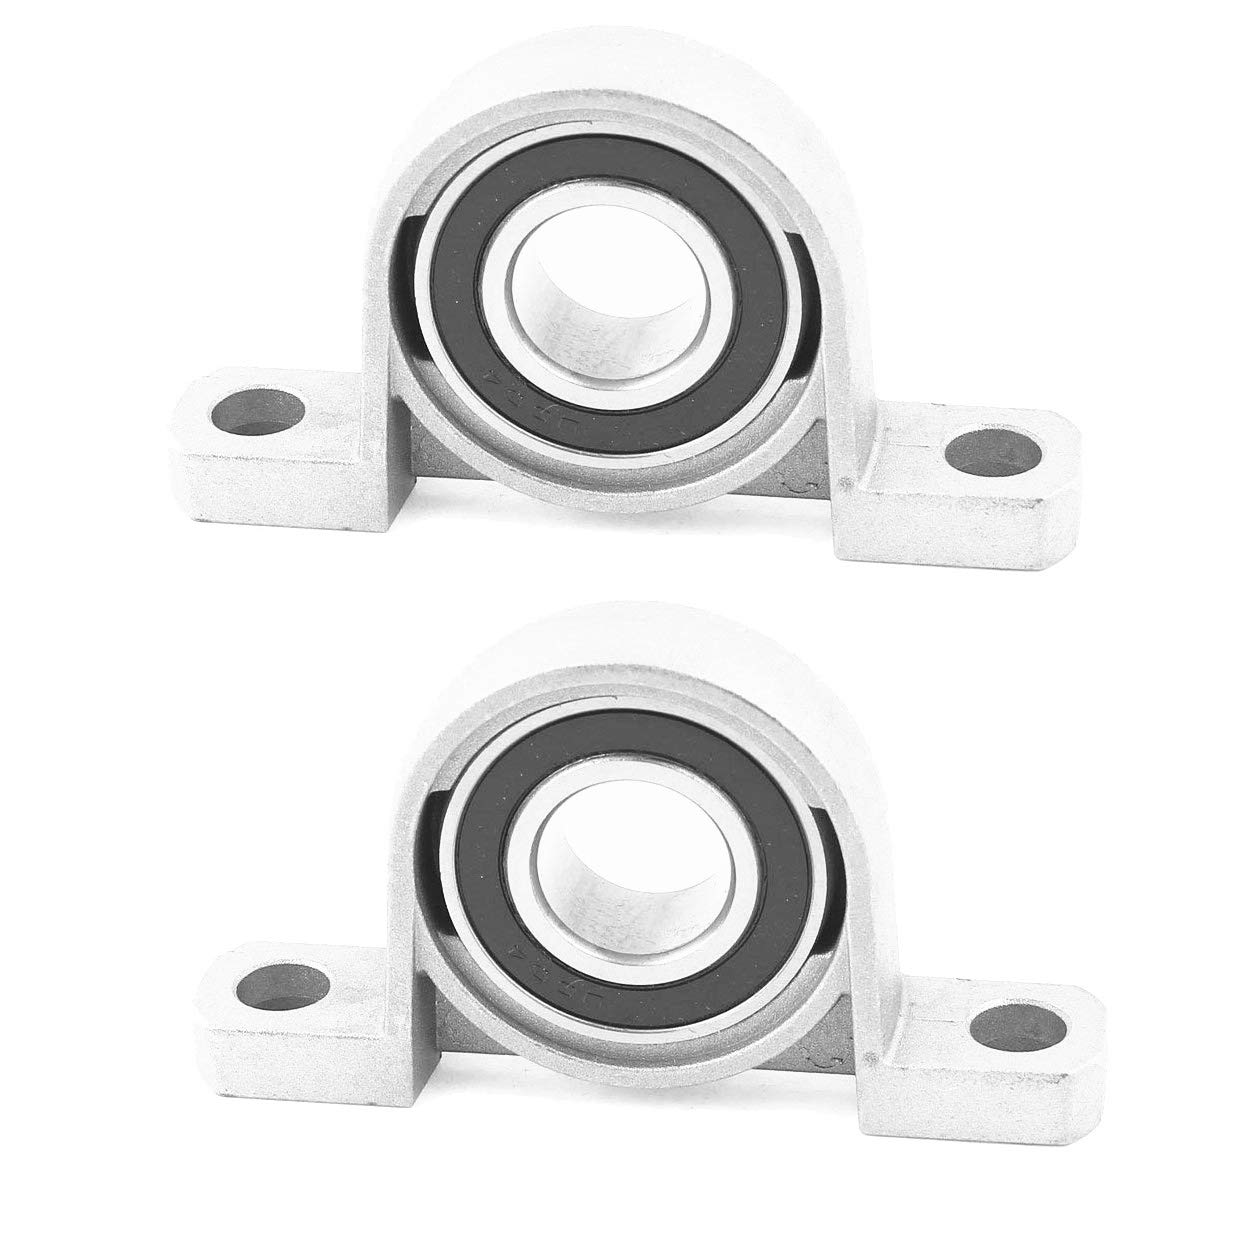 XMHF 20mm Bore Max Limited time for free shipping 69% OFF Pillow Block Cast Mounted Alloy Aluminum Bearing